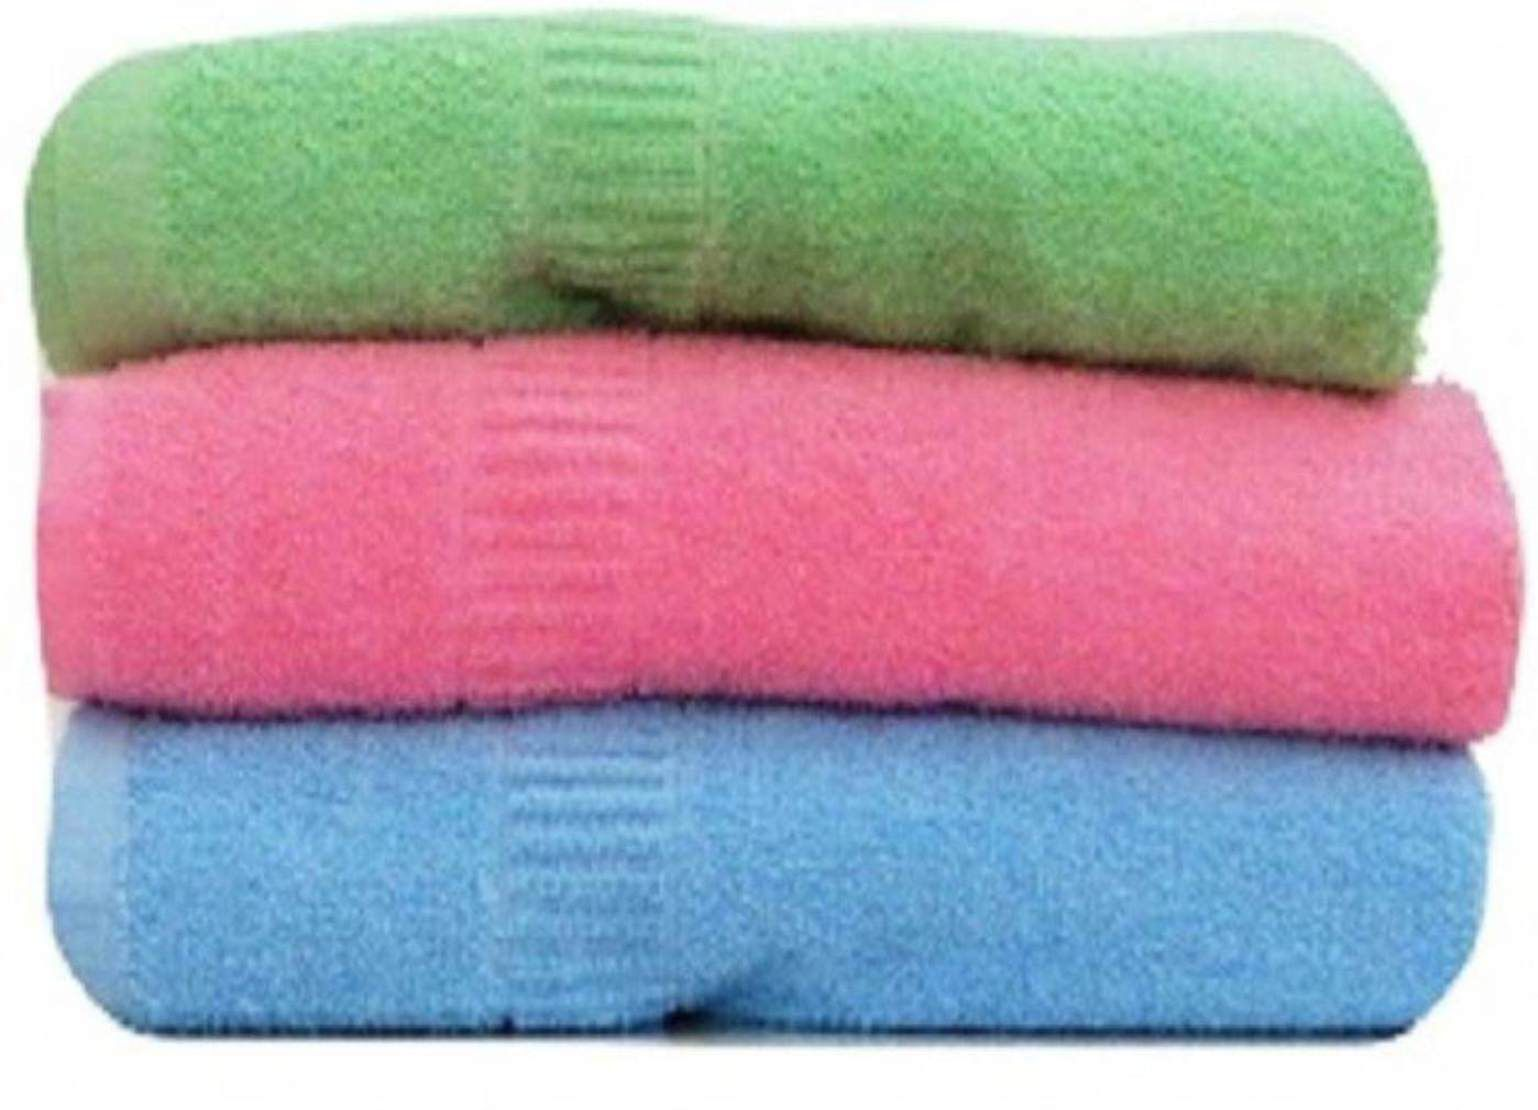 Shopping store Set of 3 Cotton Bath Towel Multi